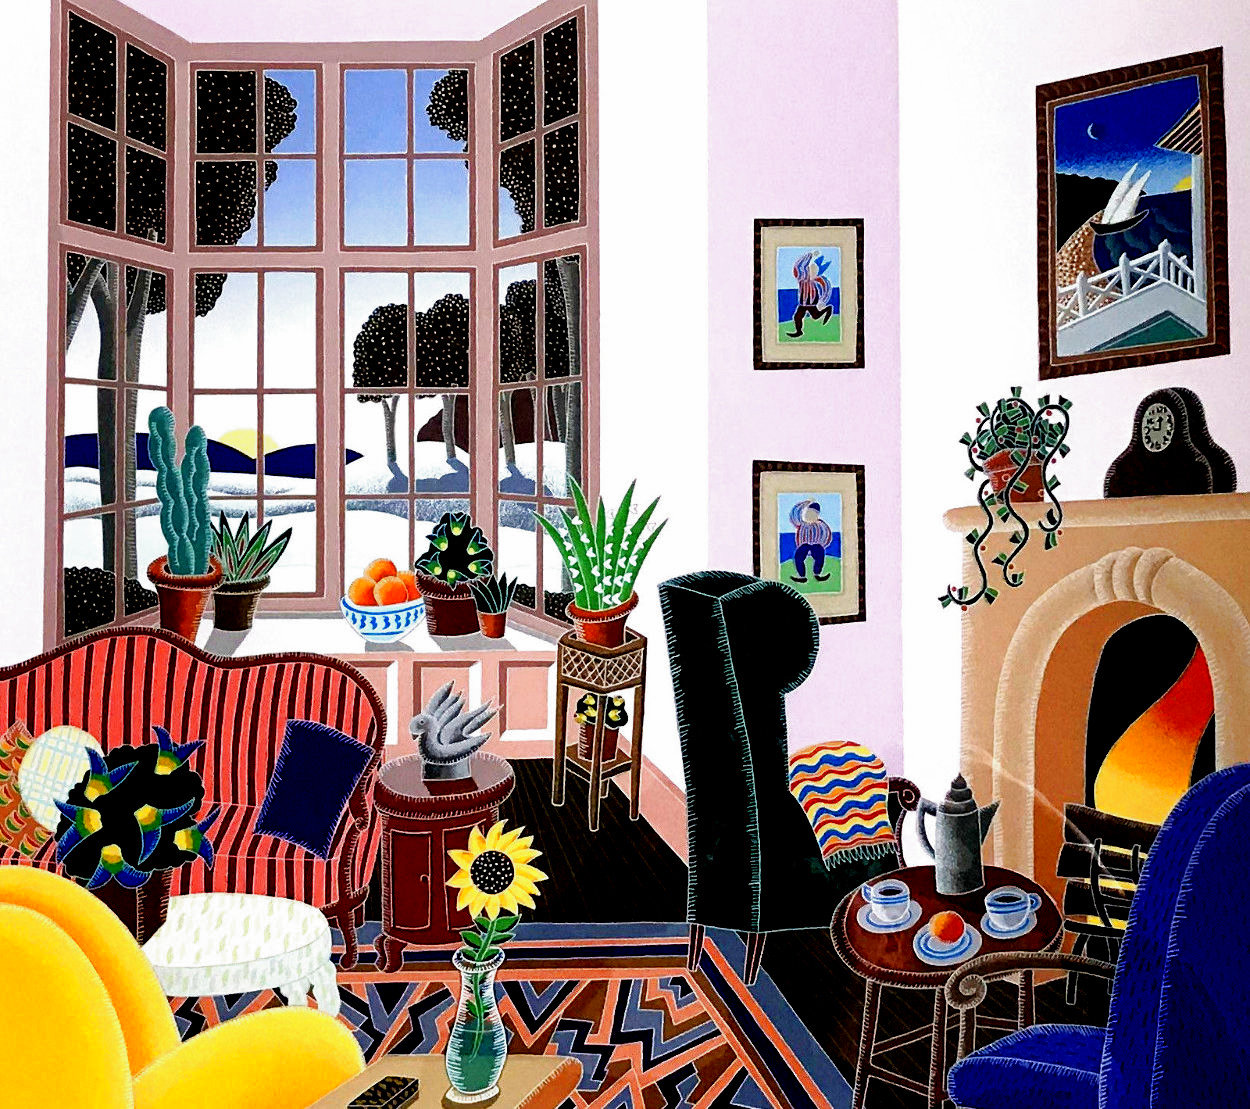 Concord 1991 Limited Edition Print by Thomas Frederick McKnight